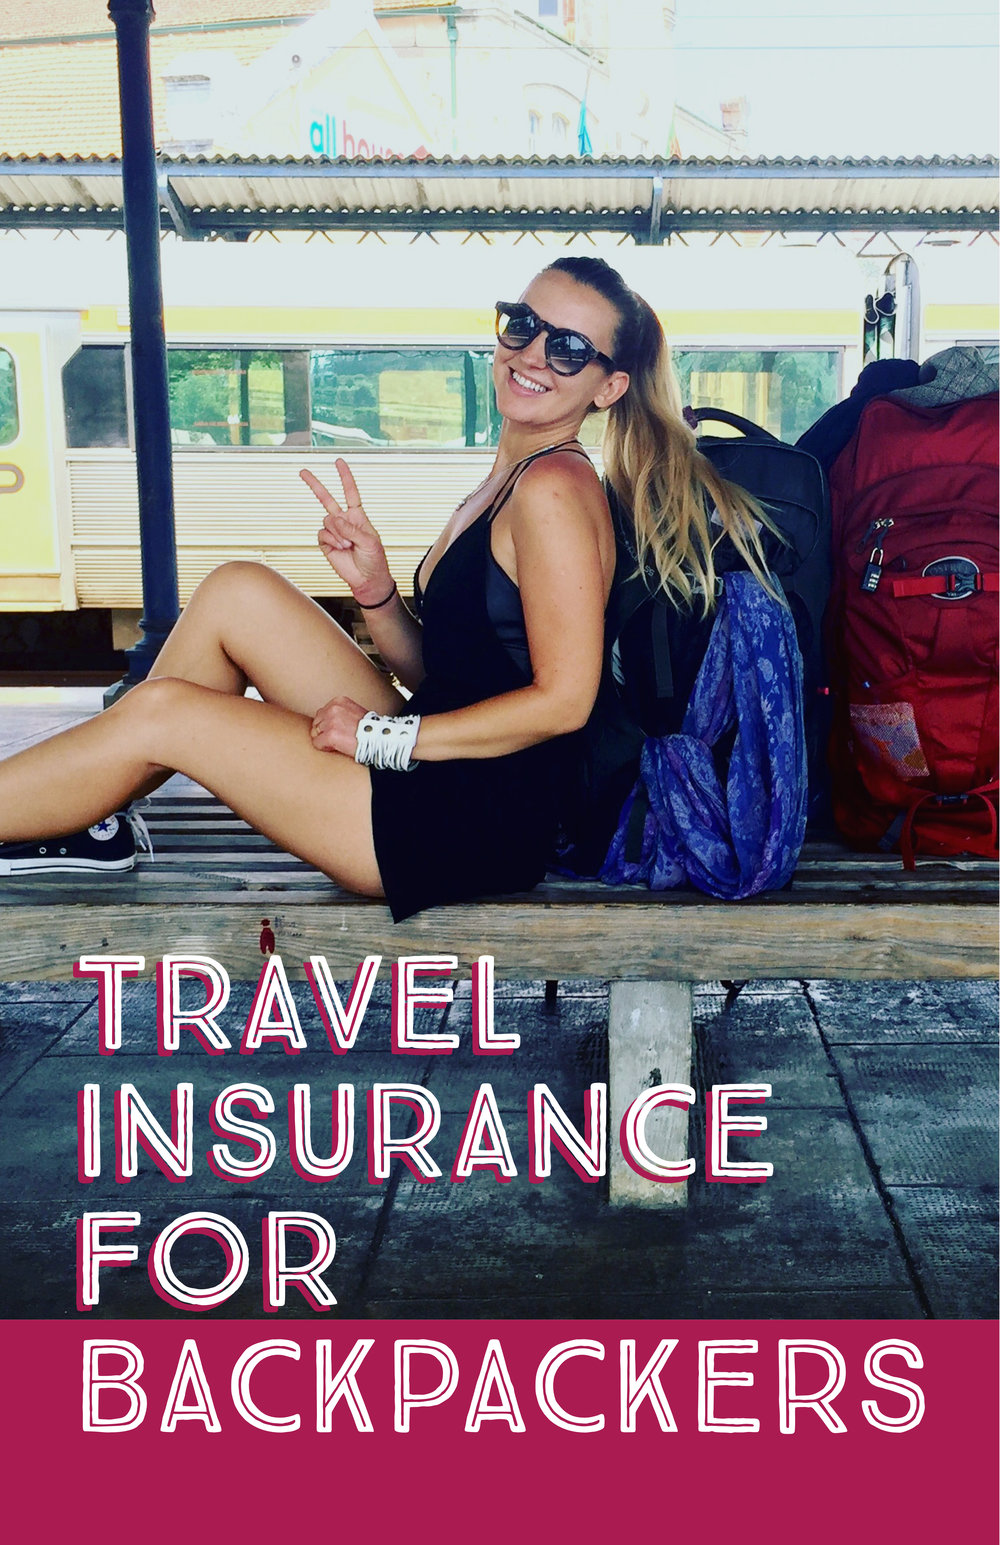 HEALTH INSURANCE FOR BACKPACKERS